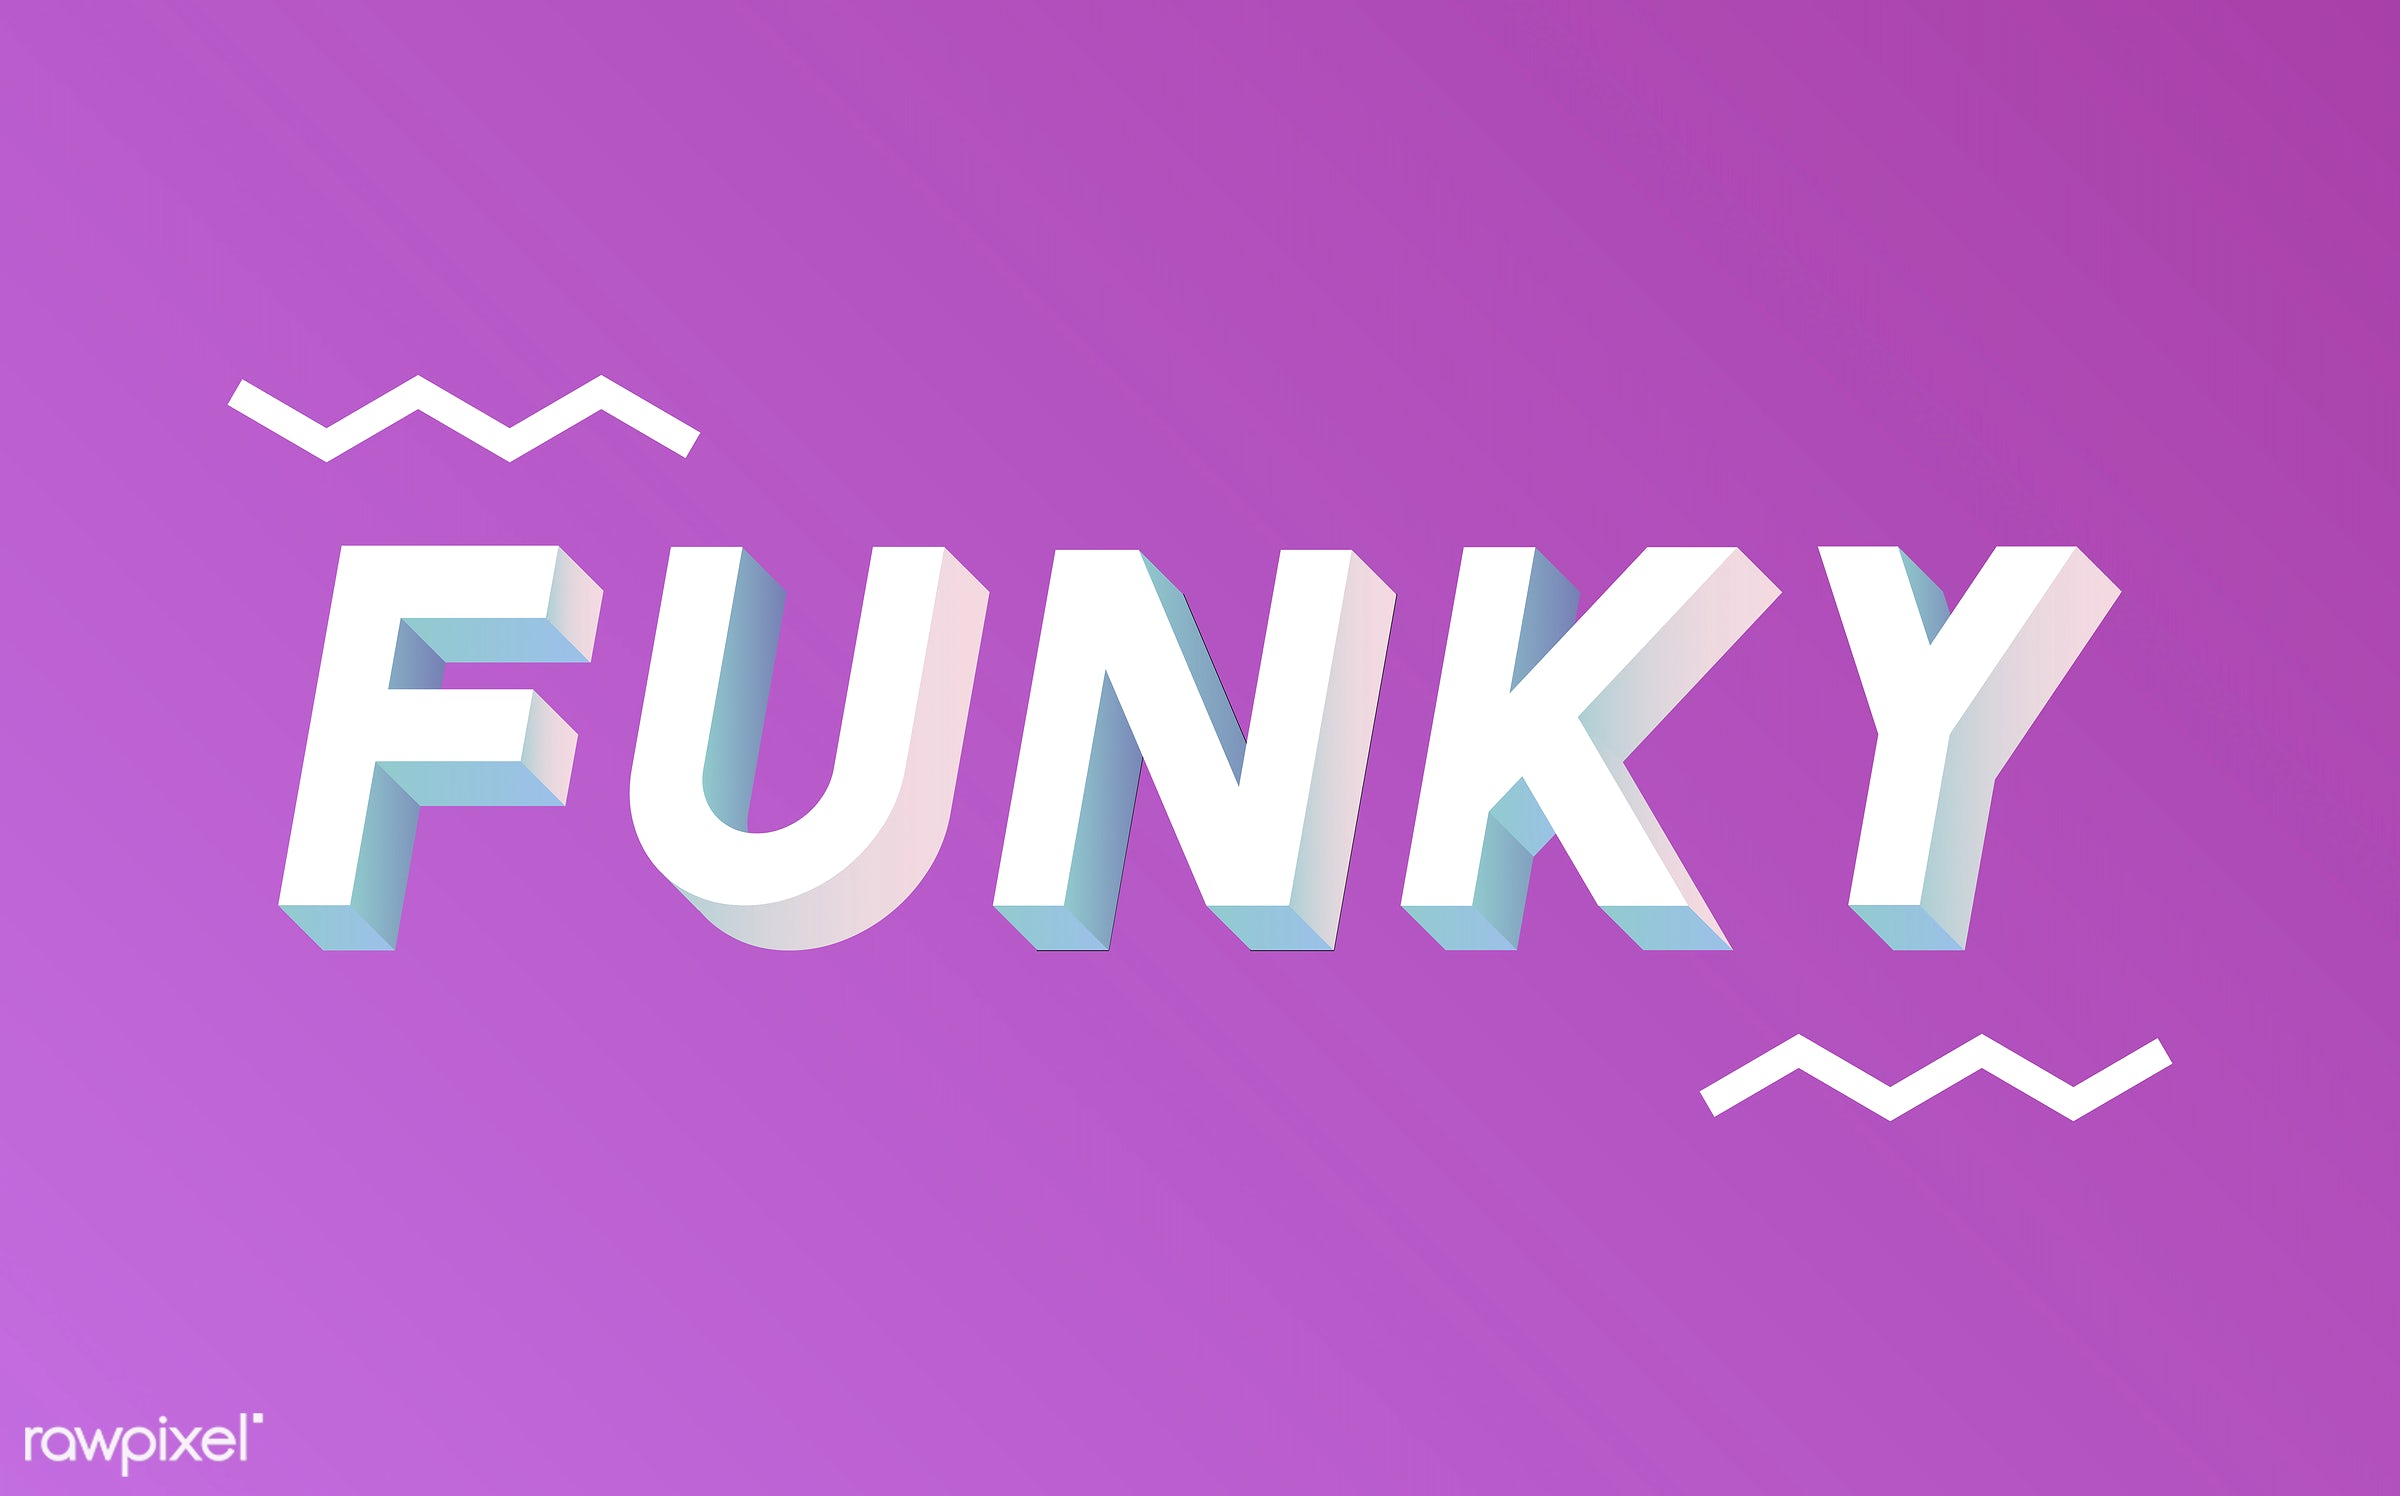 neon, colorful, 3d, three dimensional, vector, illustration, graphic, word, pink, white, funky, hip, cool